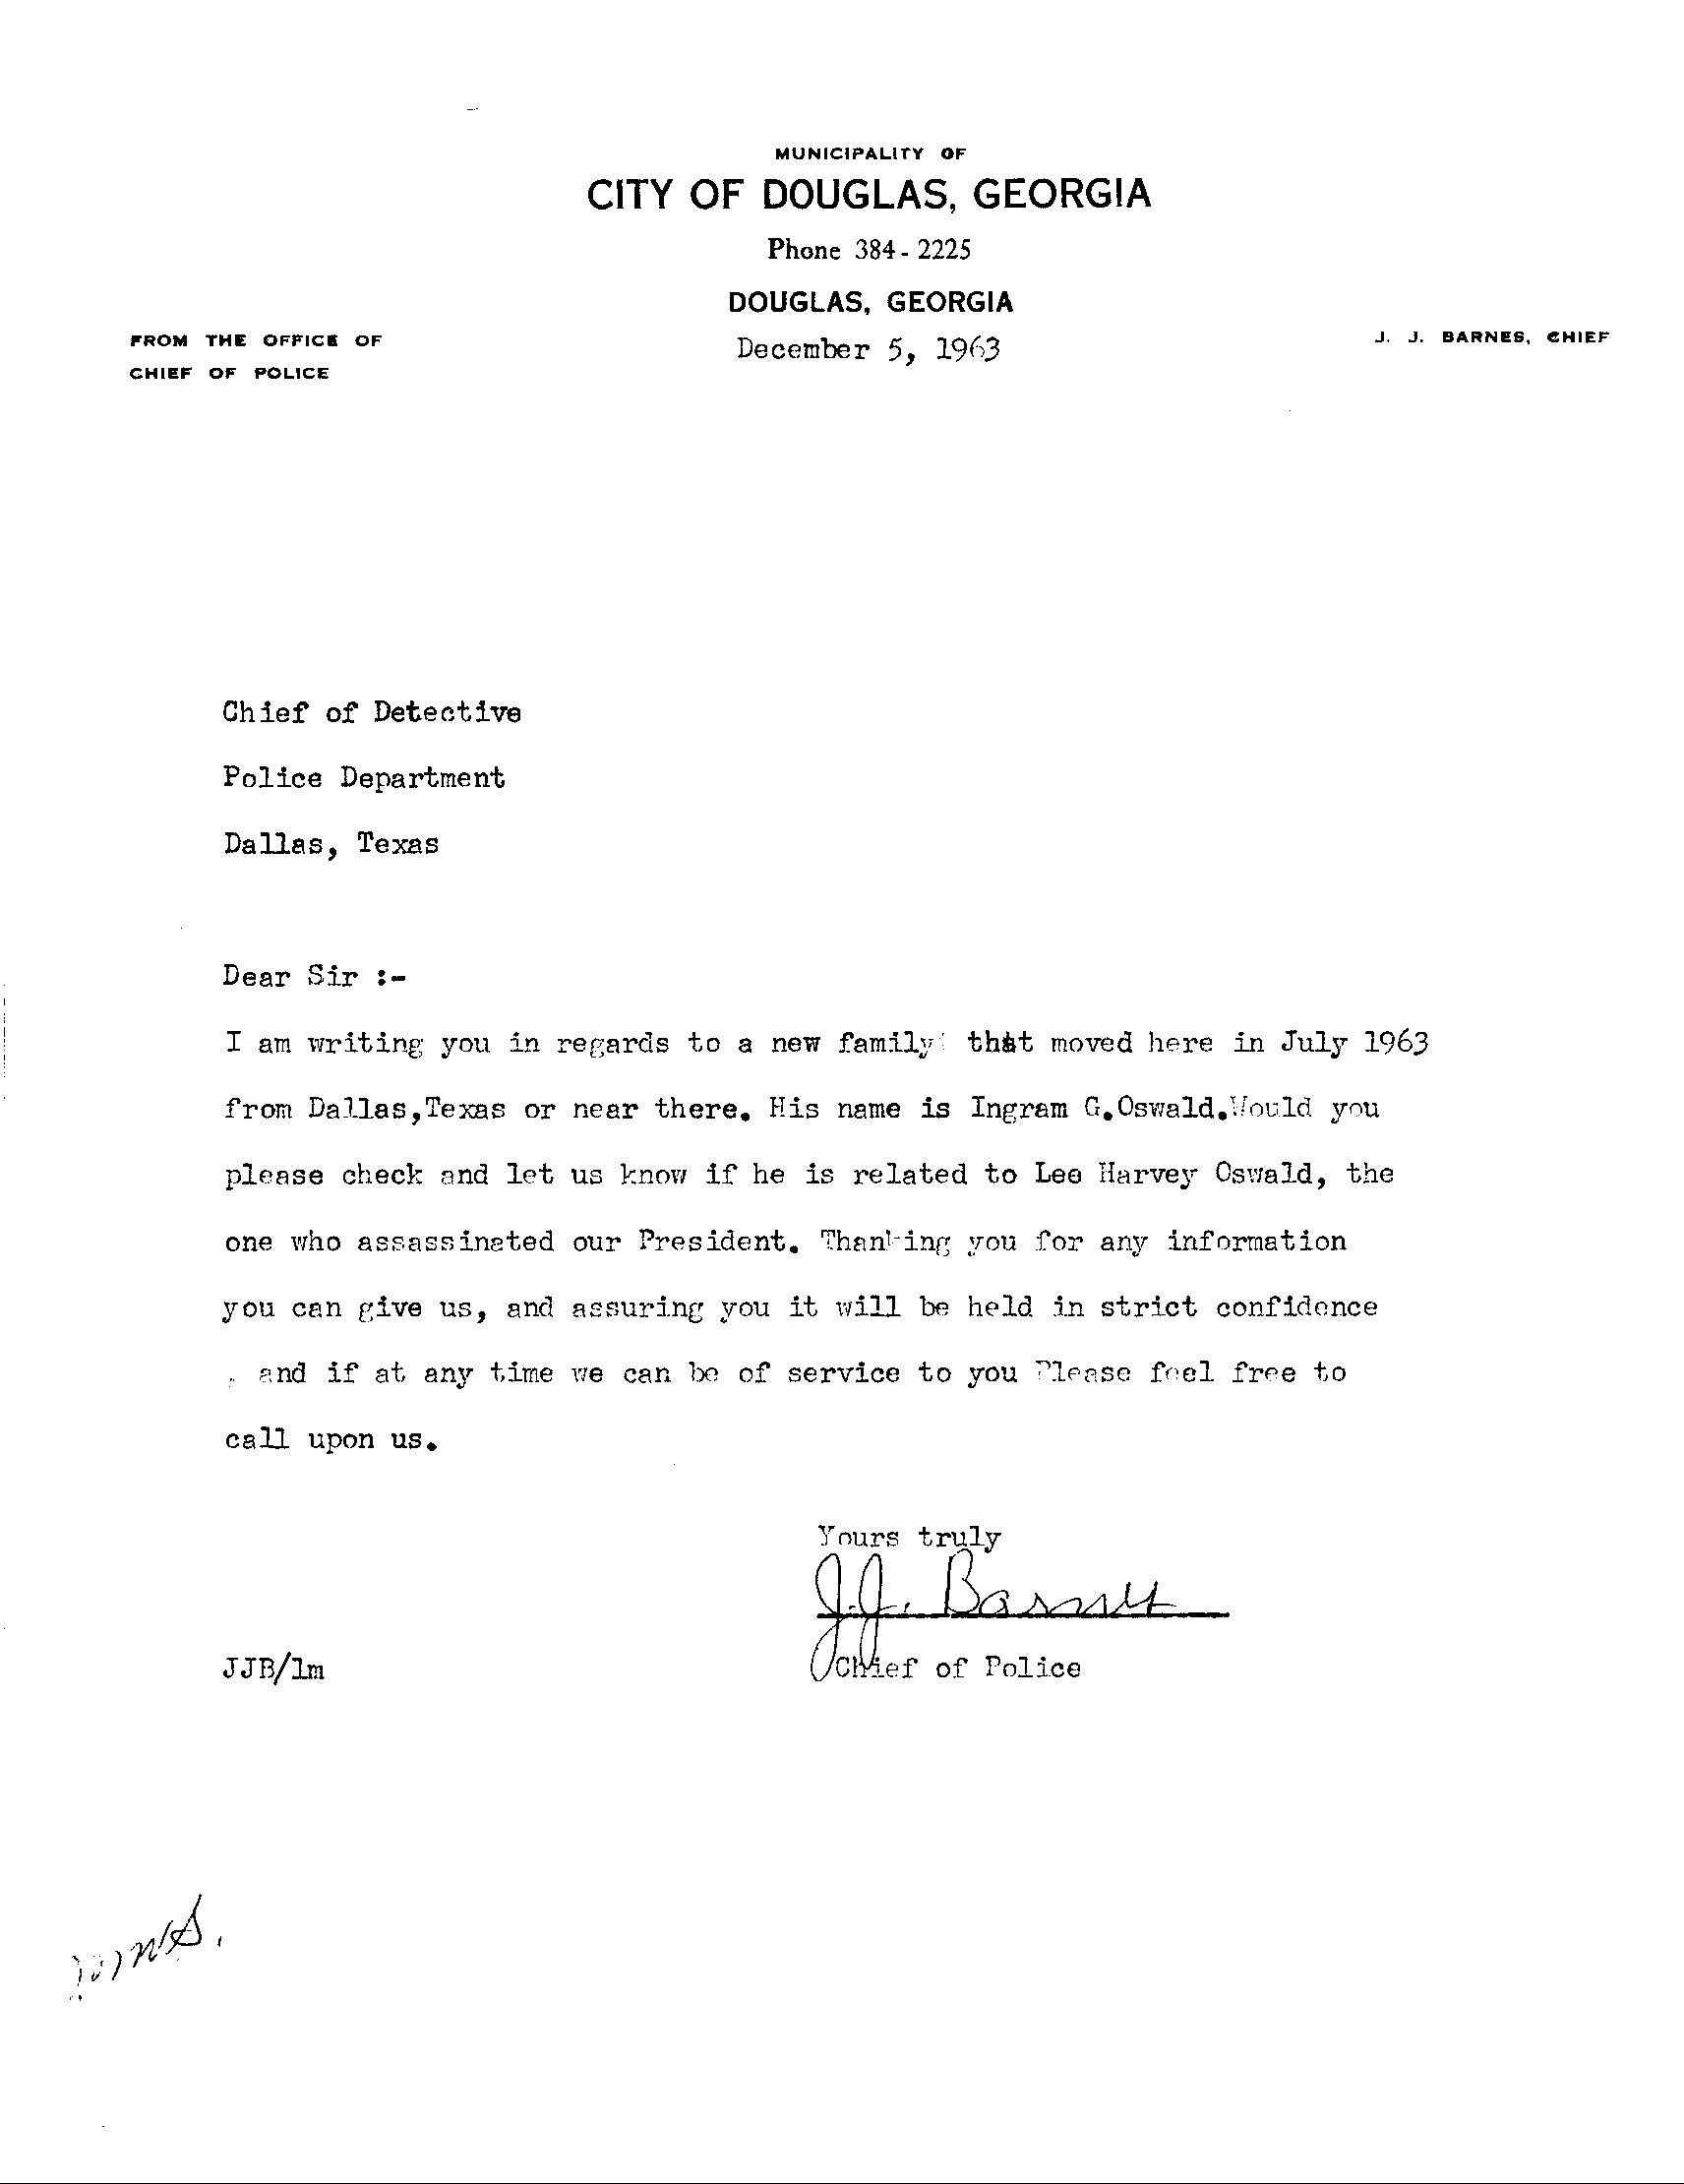 Demand Letter Template Texas - Letter format Request to School Refrence Letter format for Request